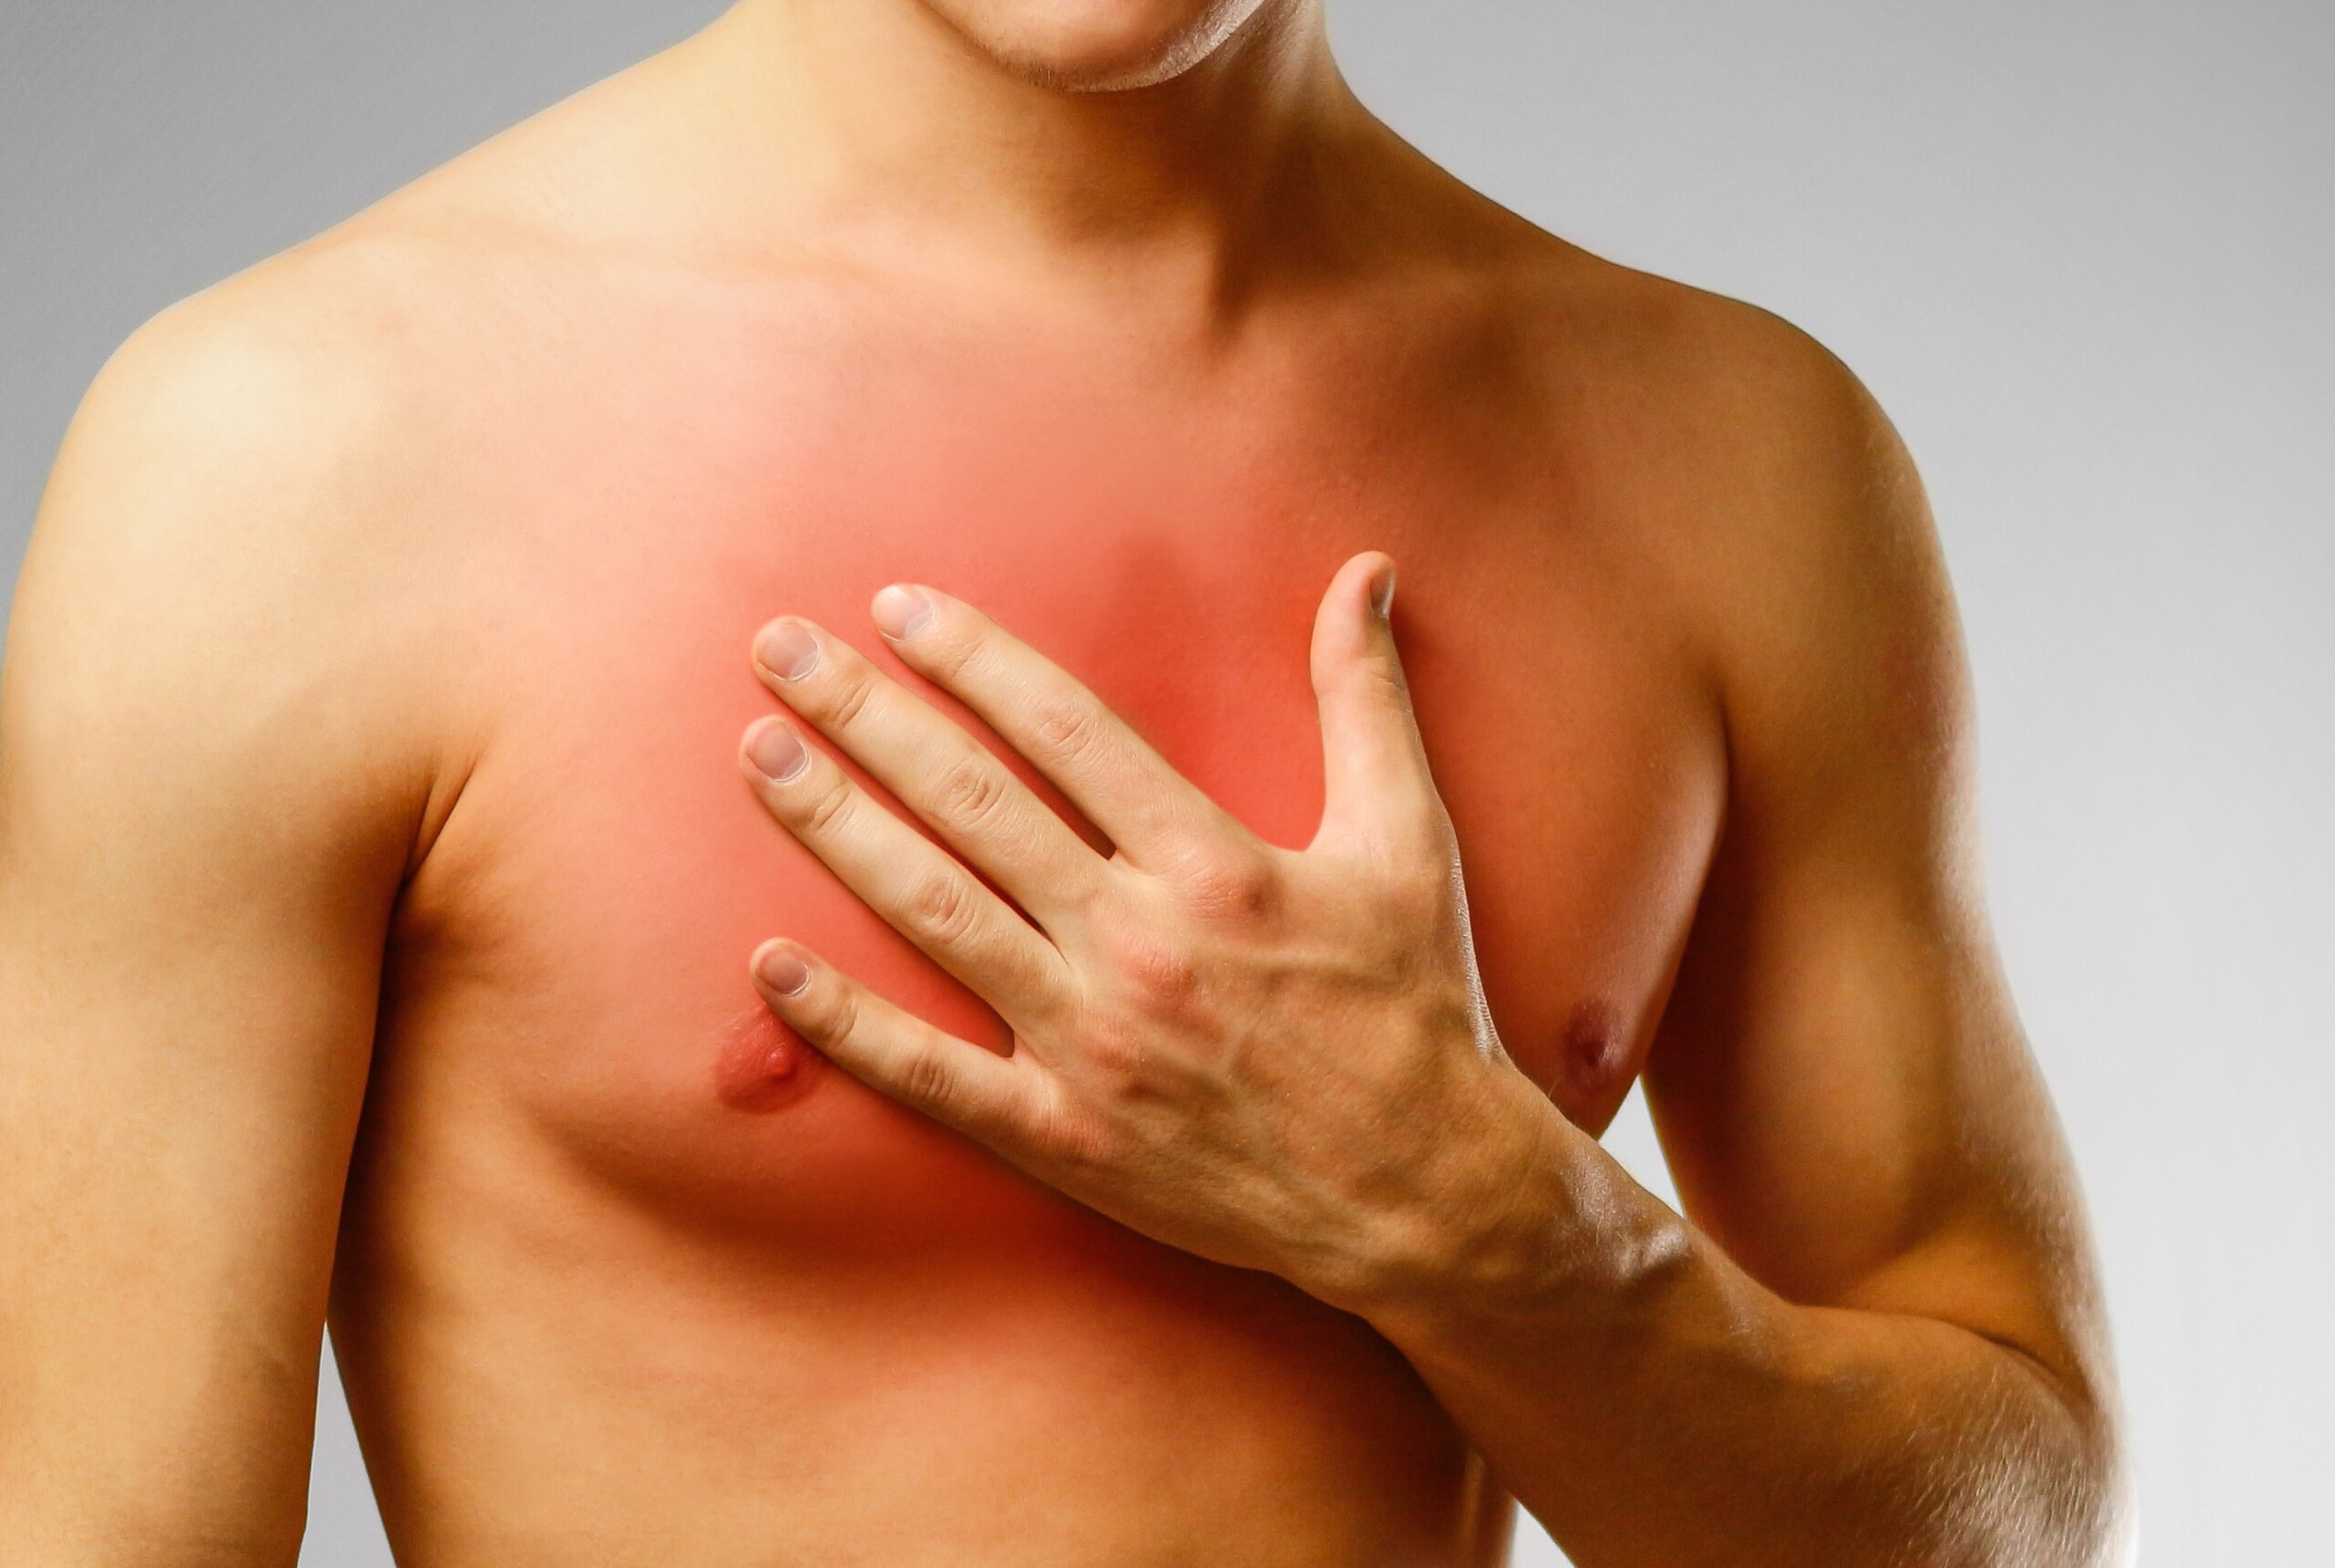 Does Your Heart Pound and You Think It's Caused by GERD?